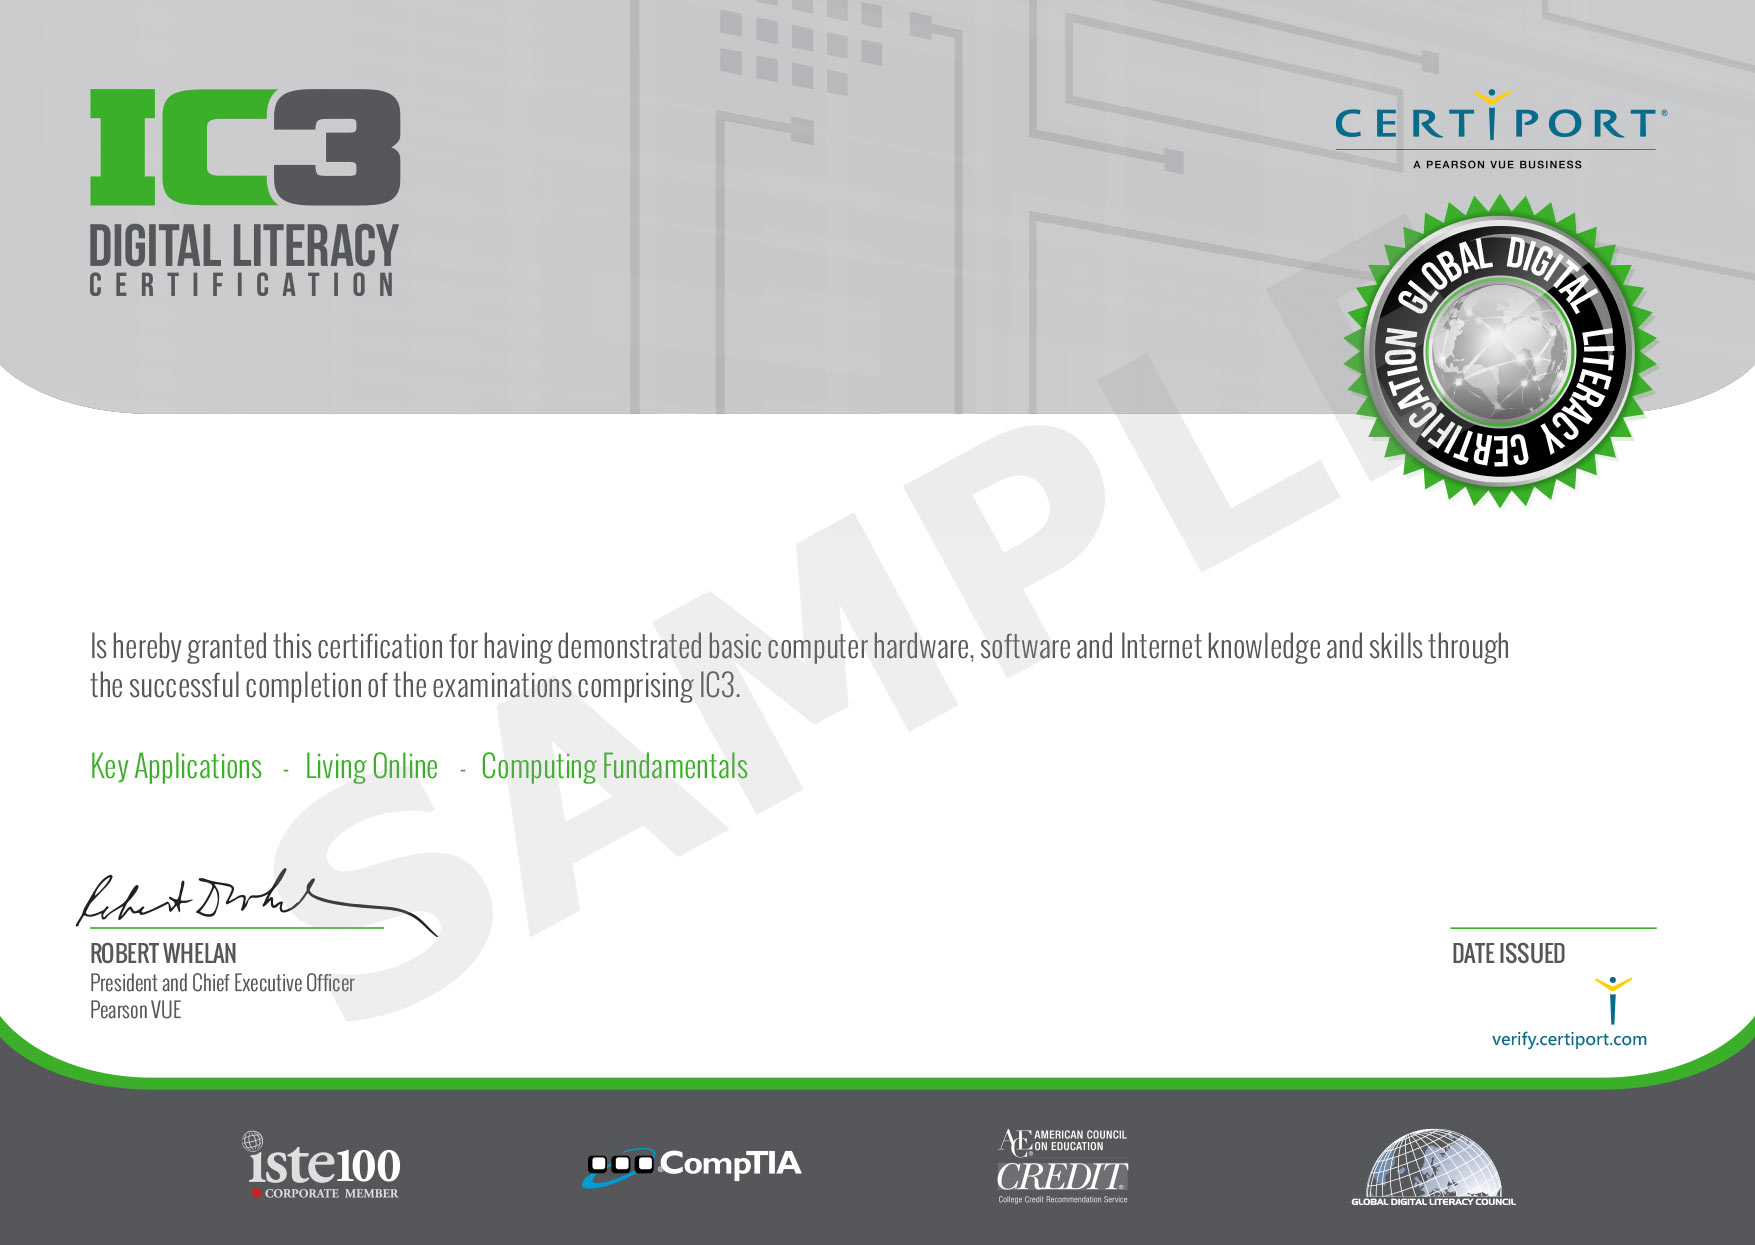 Digital Literacy Certification (IC3)